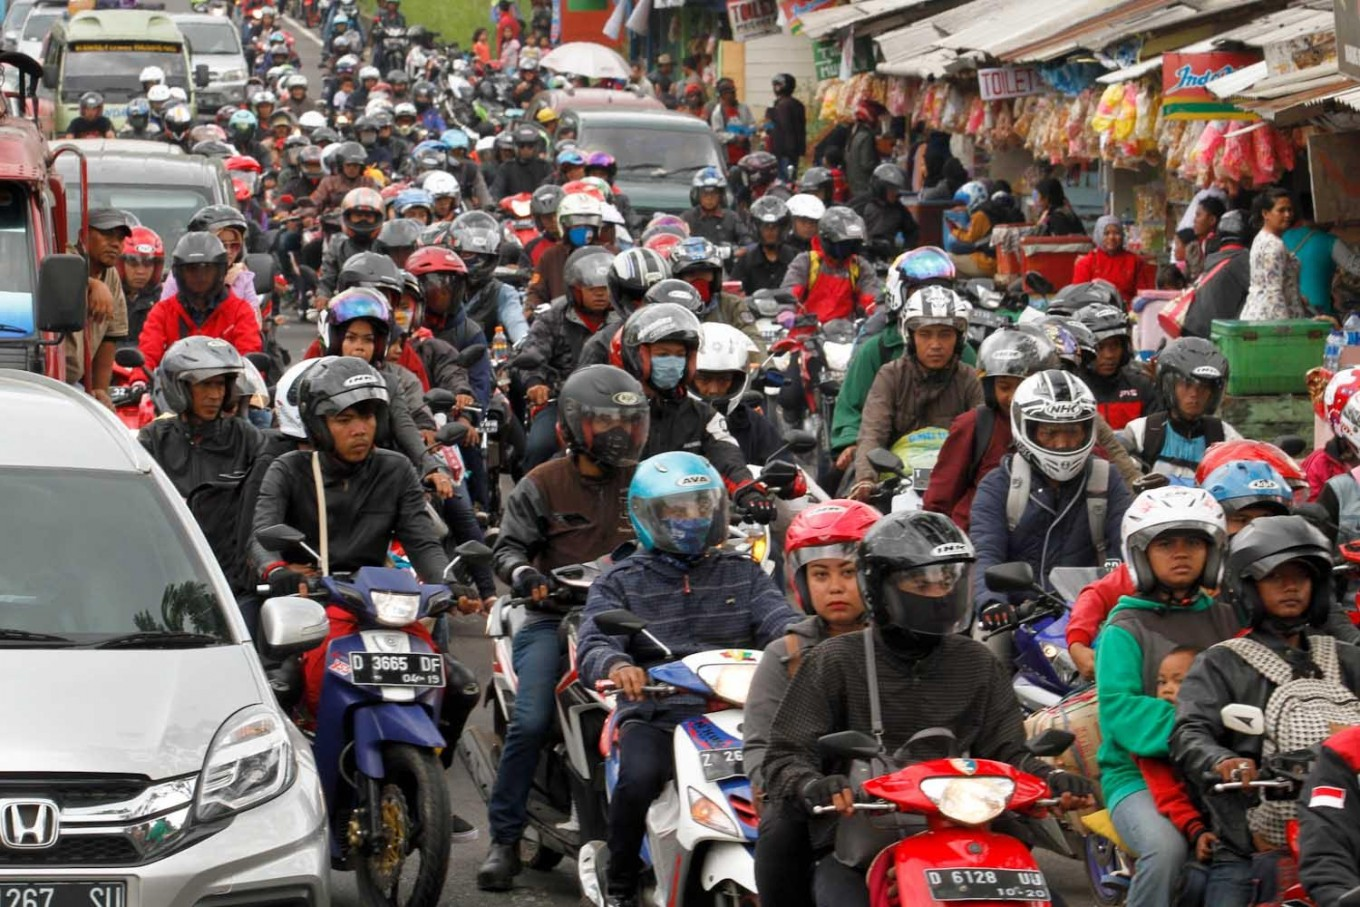 20 people killed in traffic accidents in West Java during Idul Fitri holidays